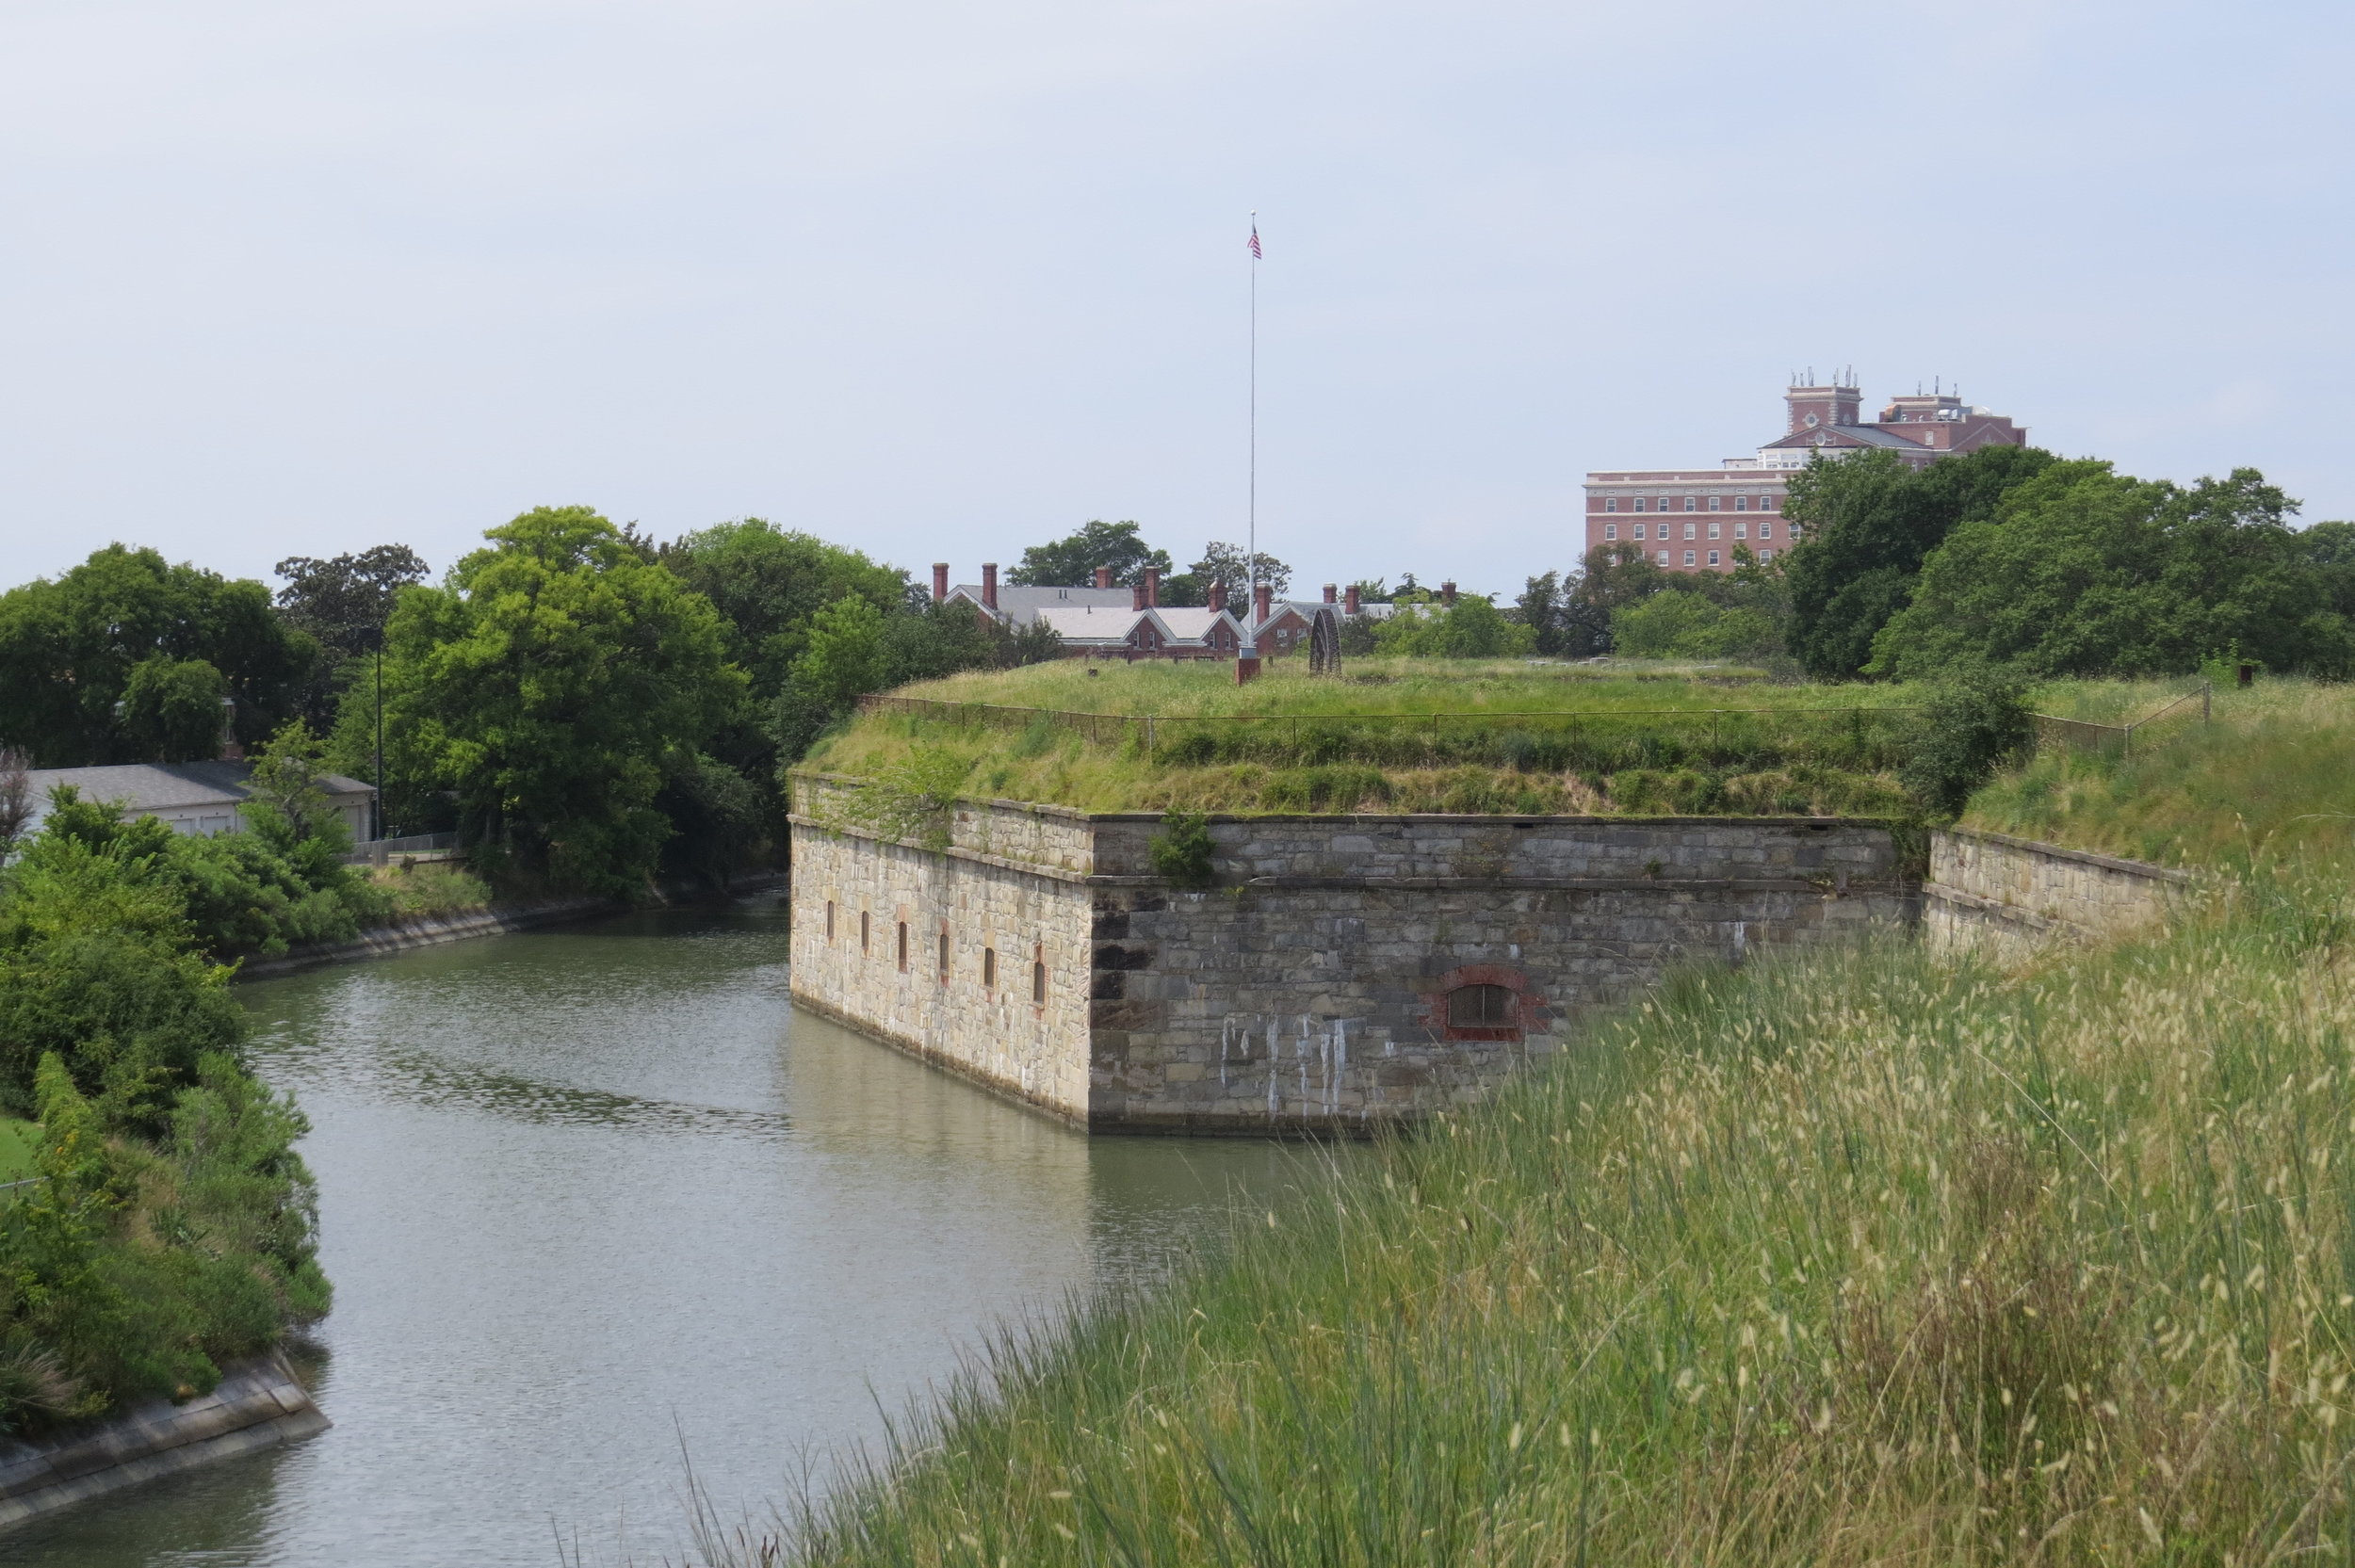 A seven-sided star fort surrounded by a moat, Fort Monroe has been active from 1823-2011.